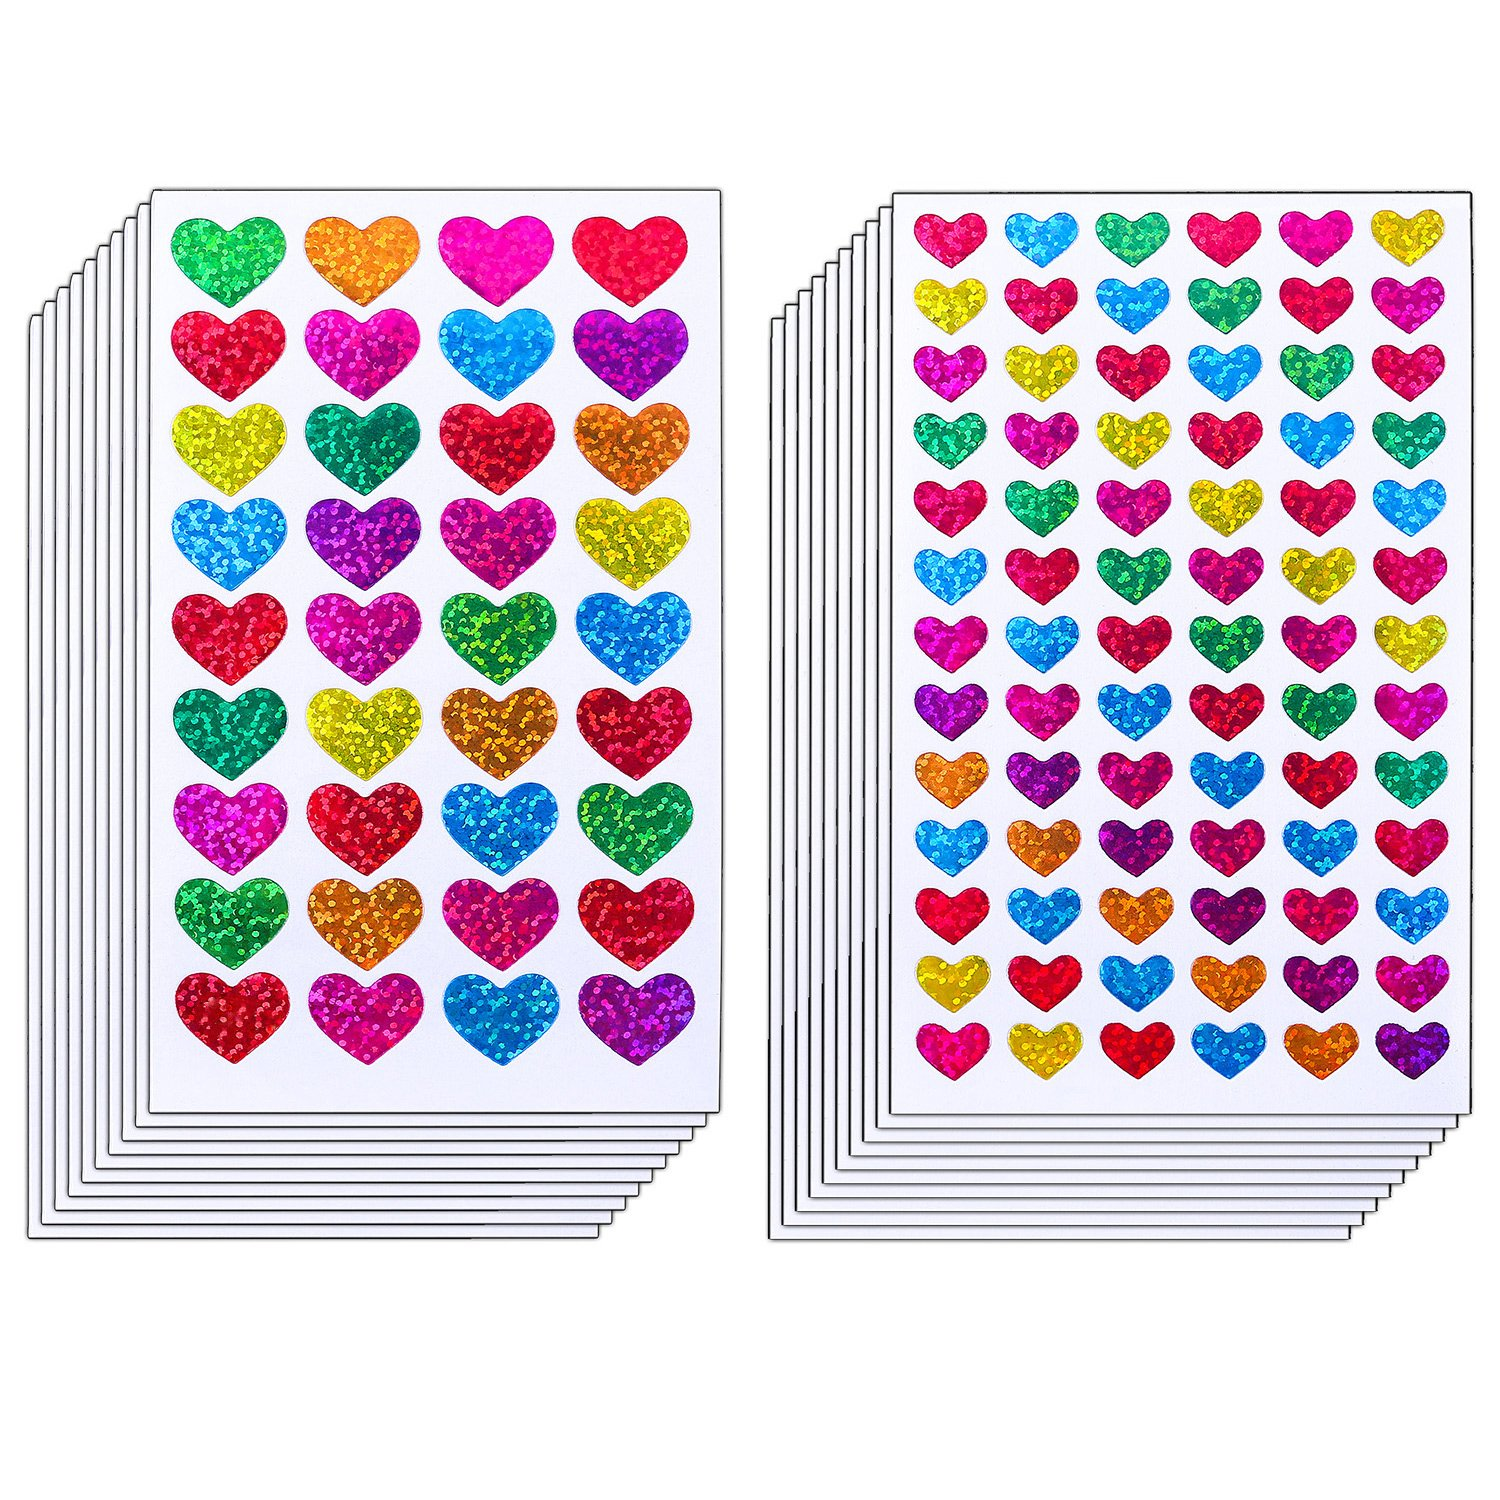 Resinta 60 Sheets Glitter Heart Stickers Valentine's day Love Decorative Sticker for Scrapbooking or Embellishment (Colorful Heart)